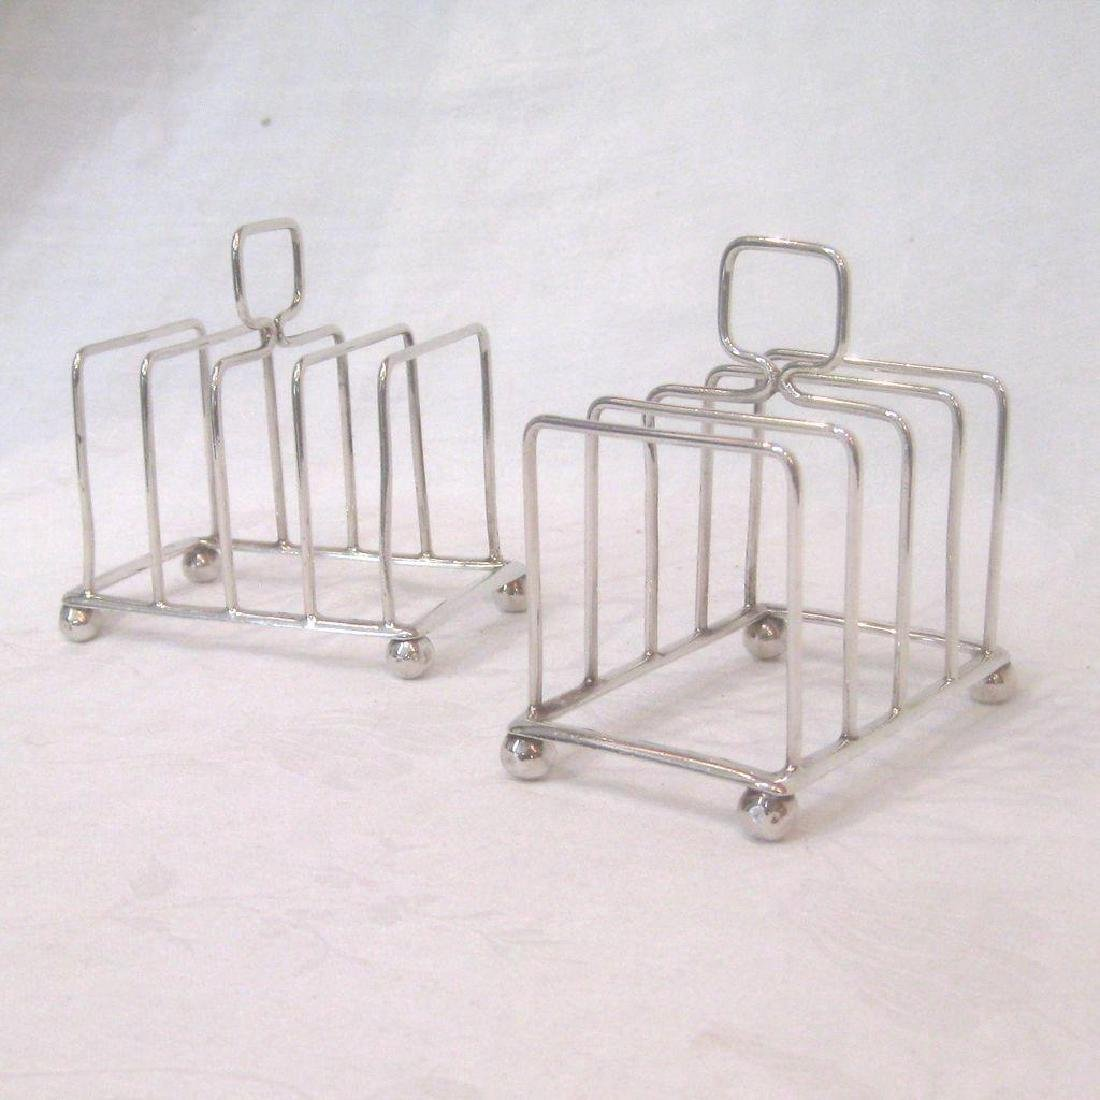 Antique Pair of English Sterling Silver Toast Racks - 2